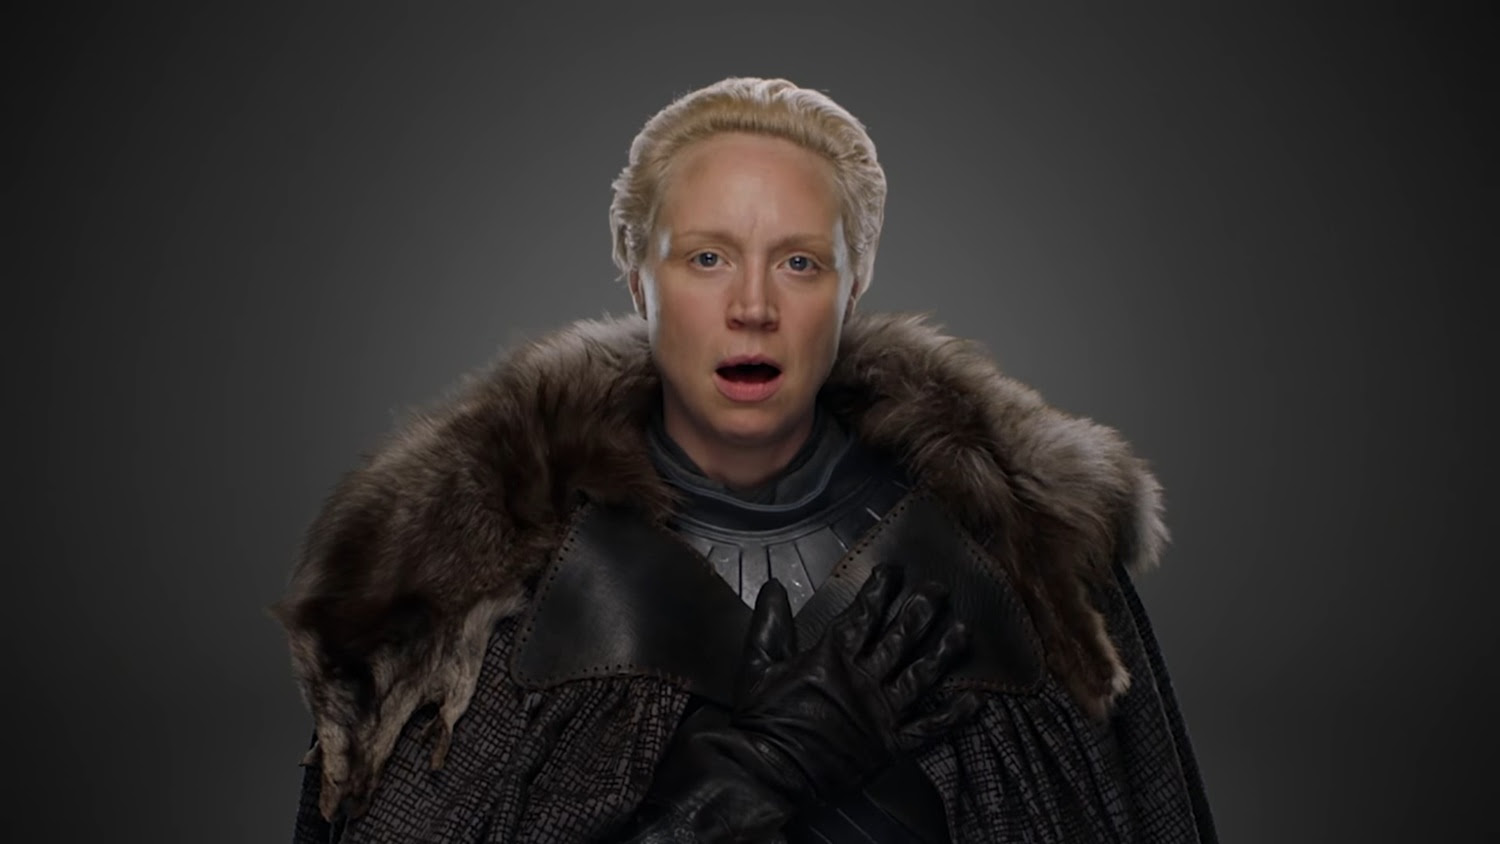 Brienne of Tarth